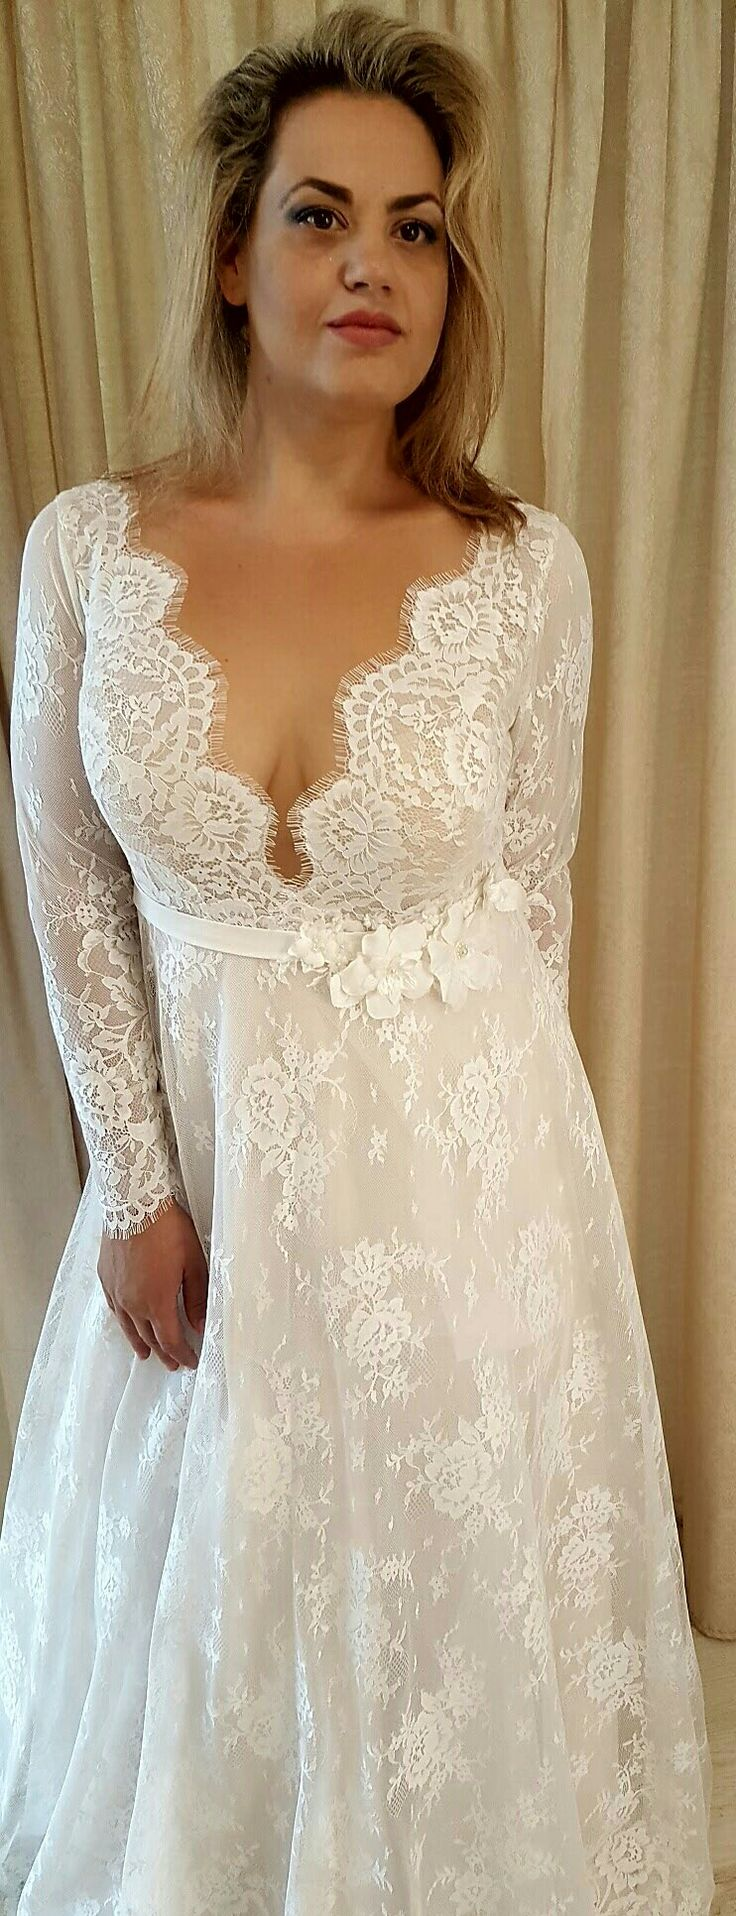 Plus size romantic French lace wedding gown with a deep v-neck and long sleeves. Sophia. Studio Levana. 2018